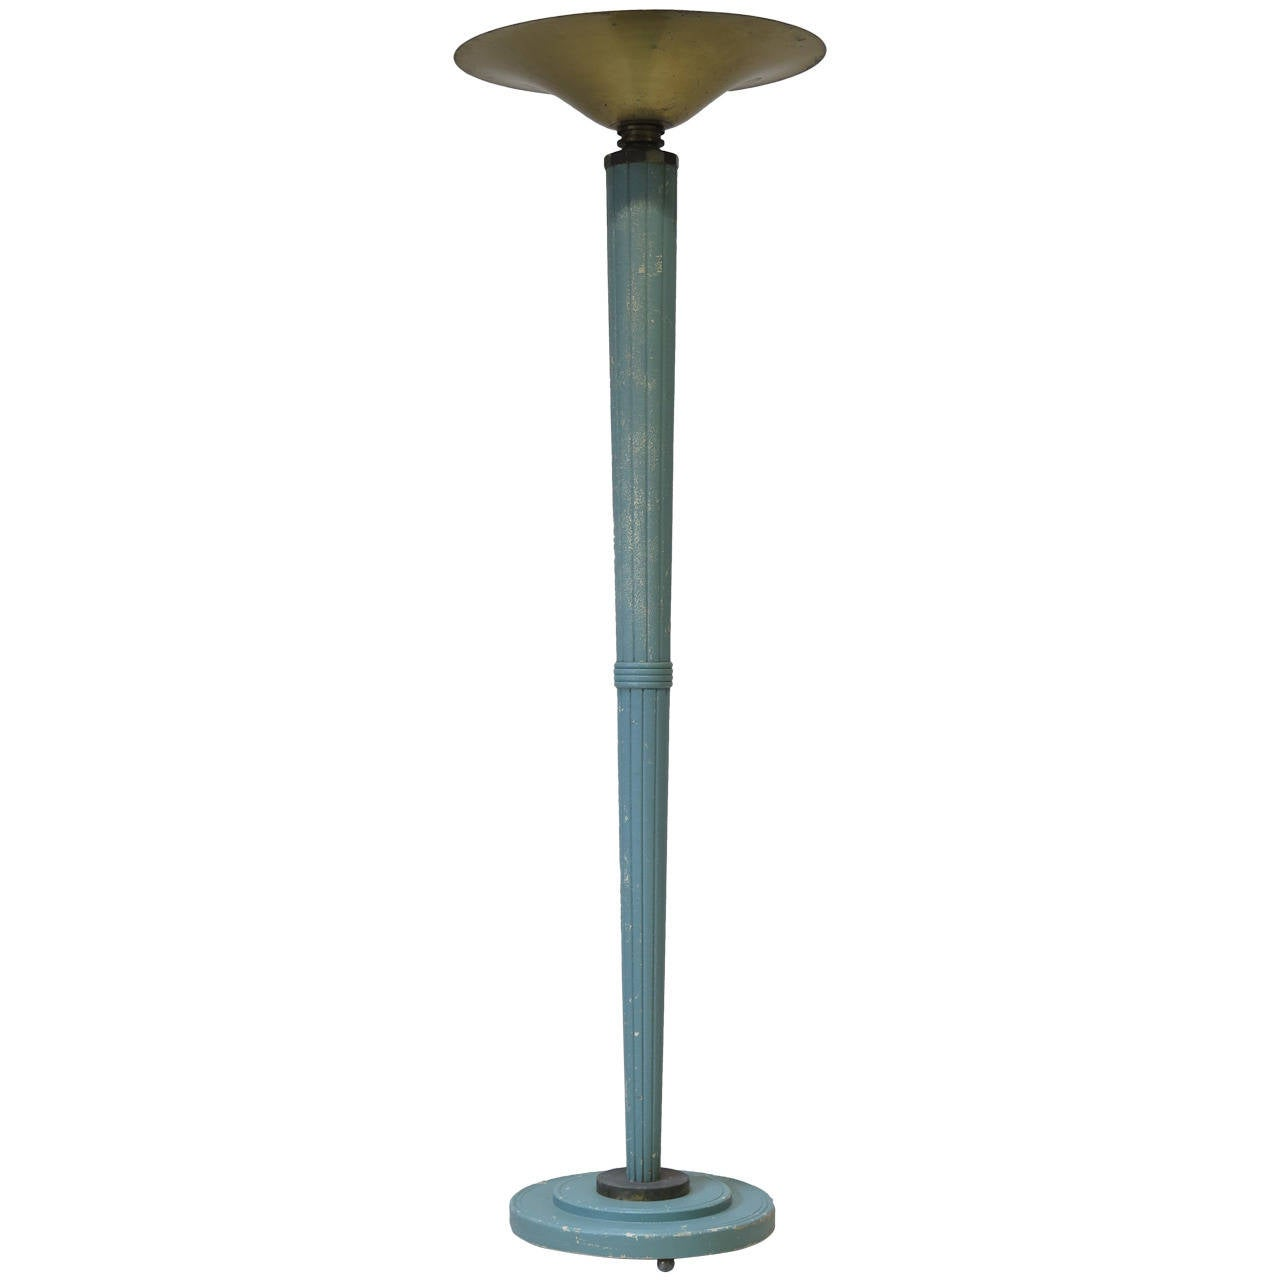 french art deco floor lamp circa 1930s at 1stdibs